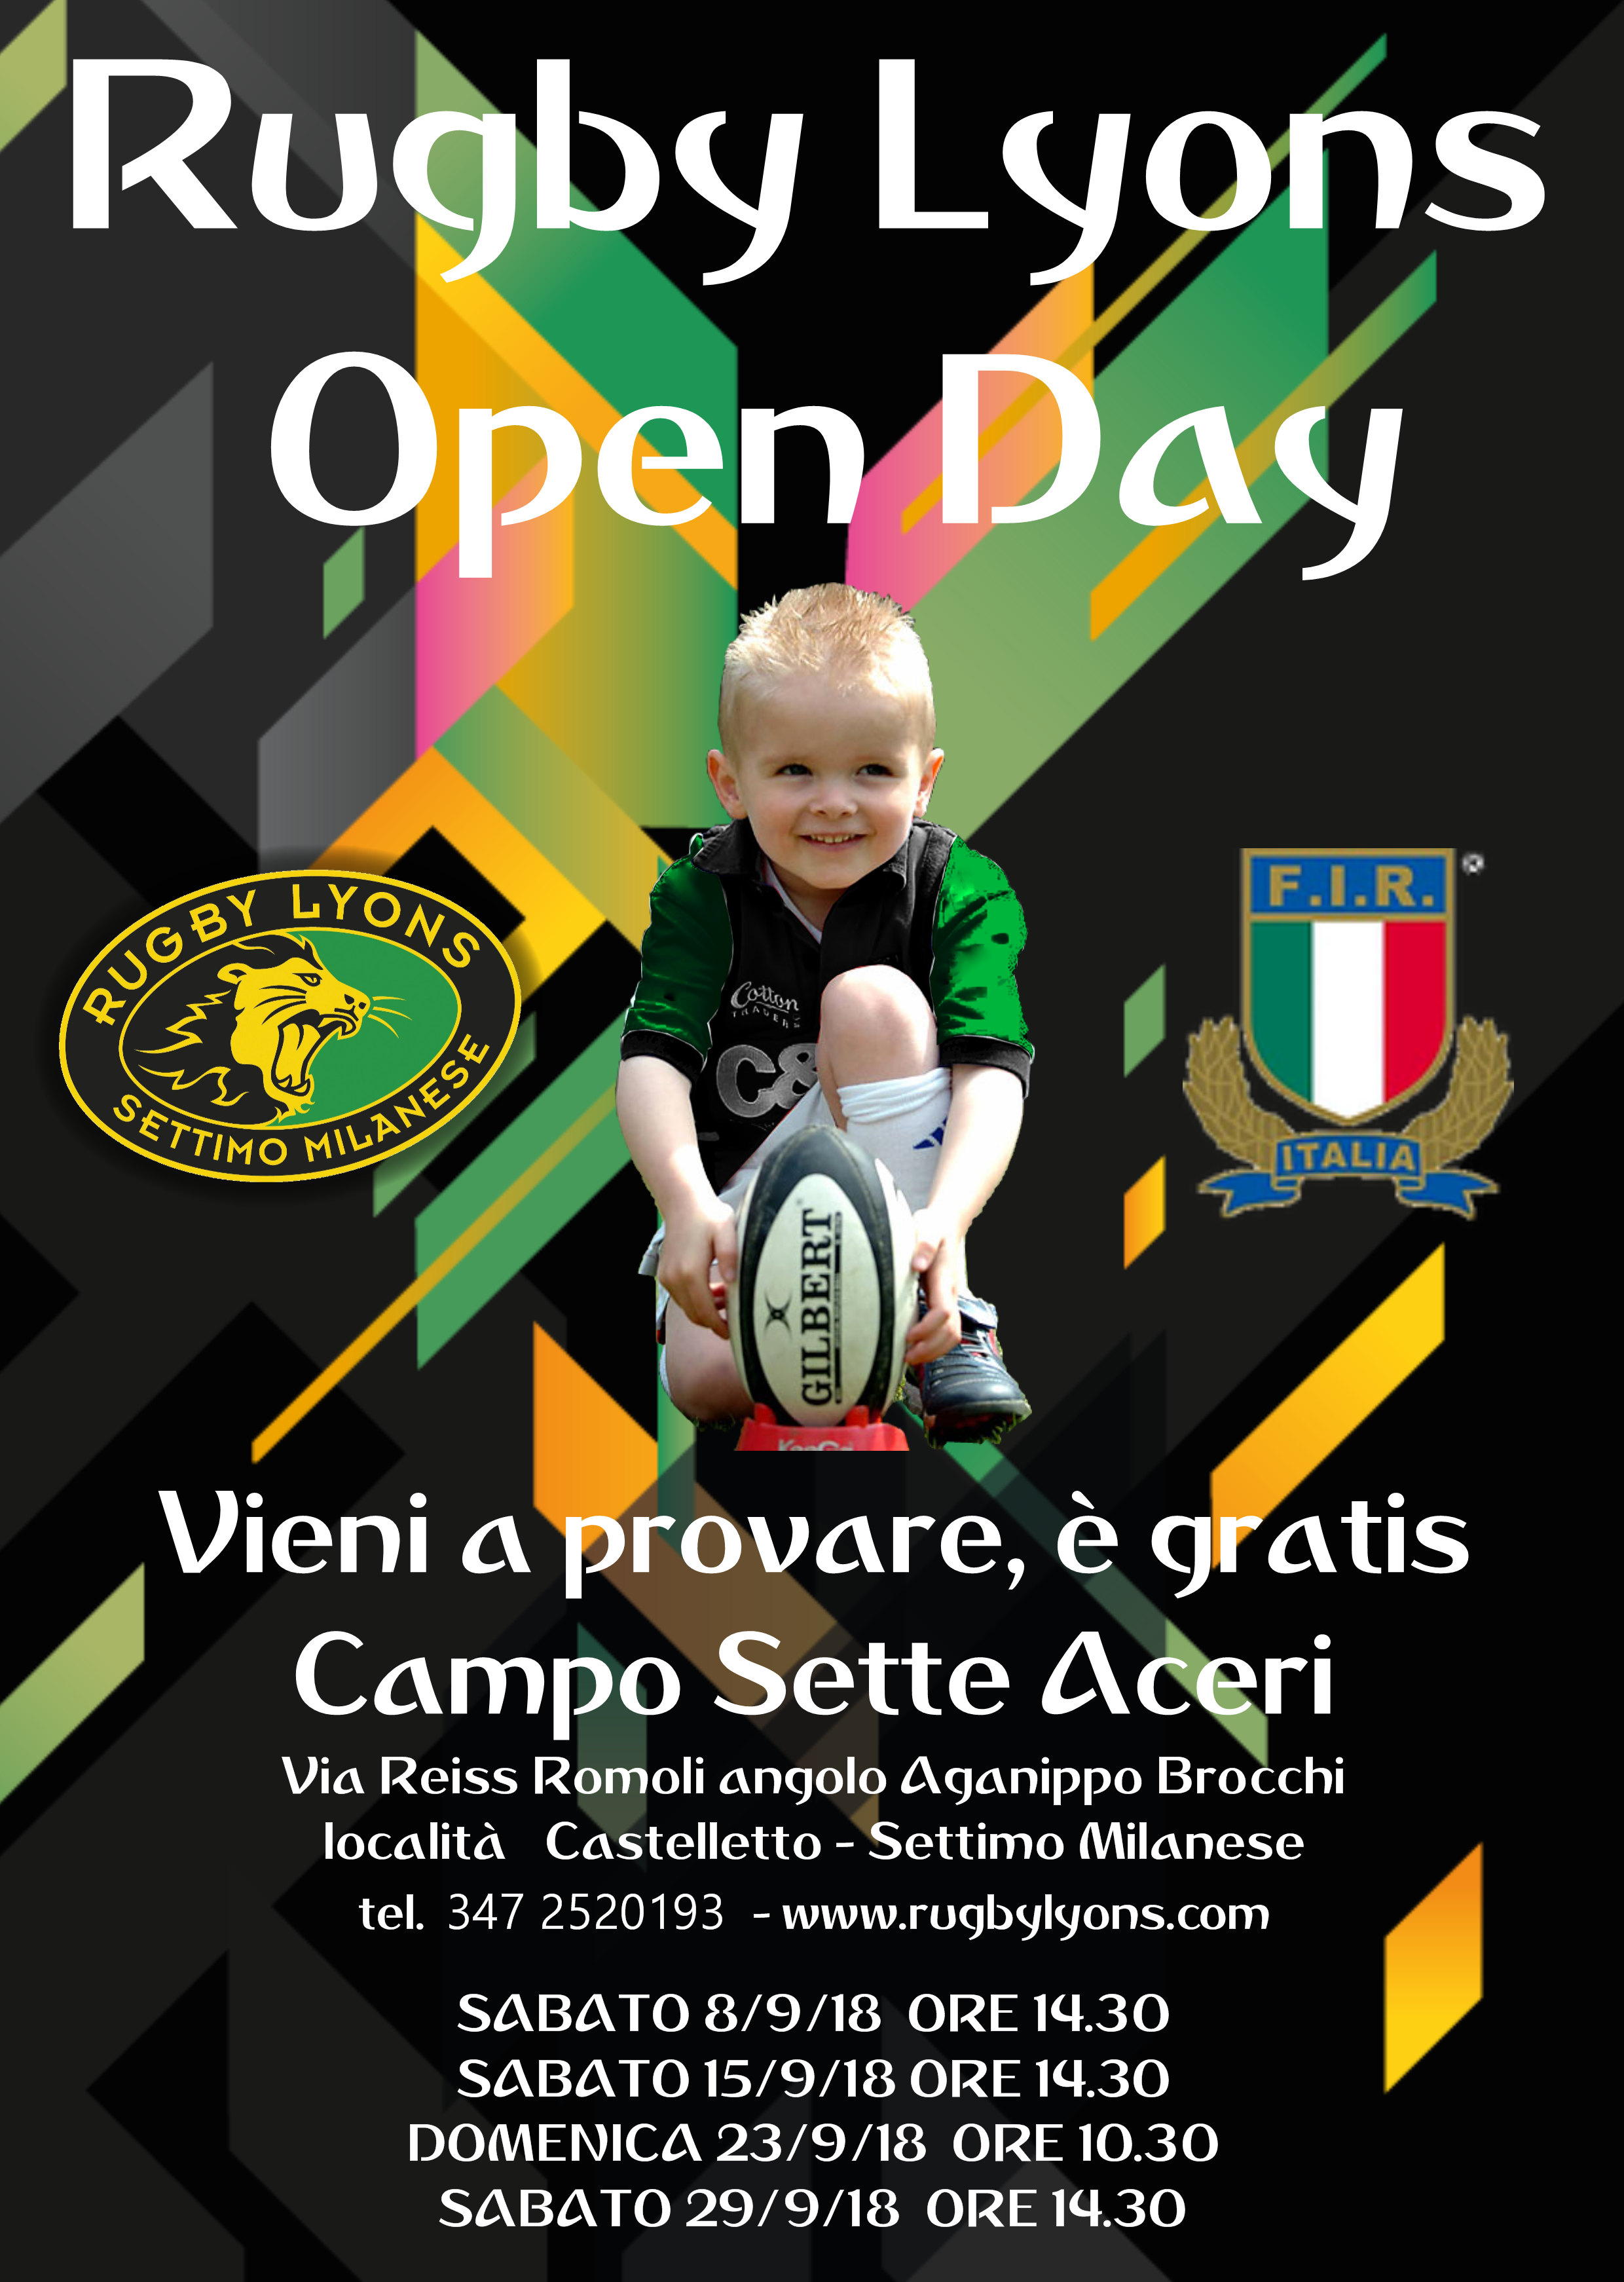 OPEN DAYS RUGBY LYONS – DAI 6 ANNI A 99